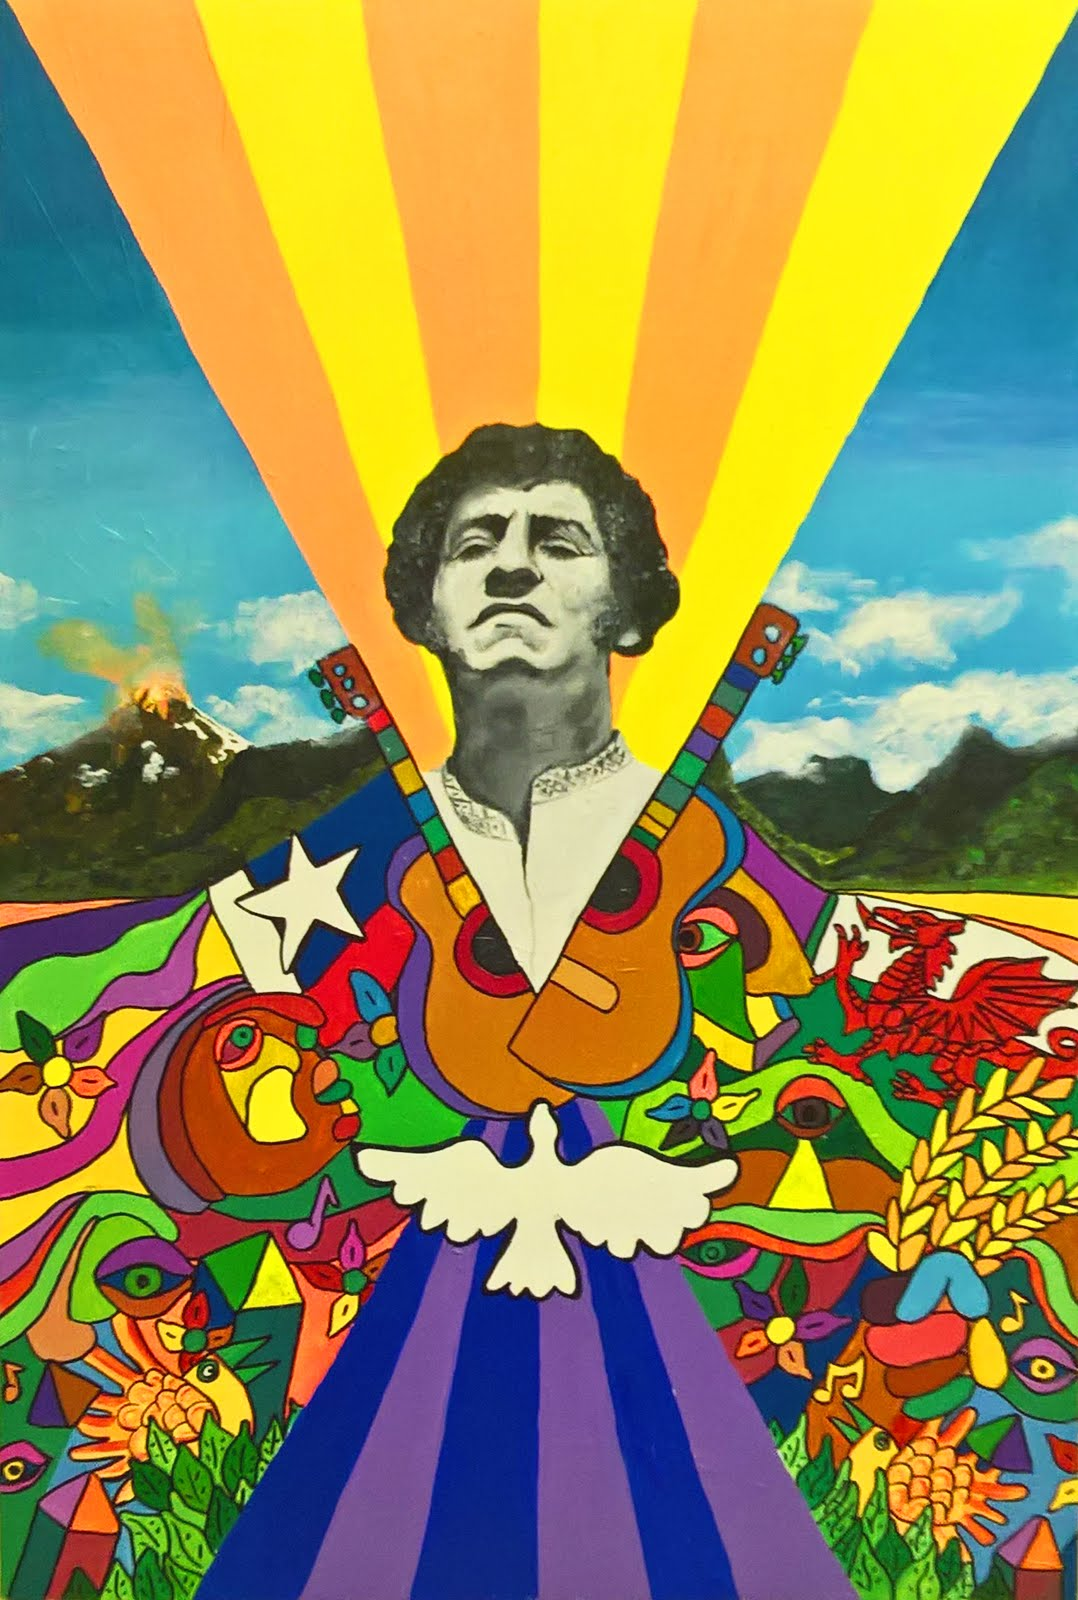 Alternative version of Victor Jara poster